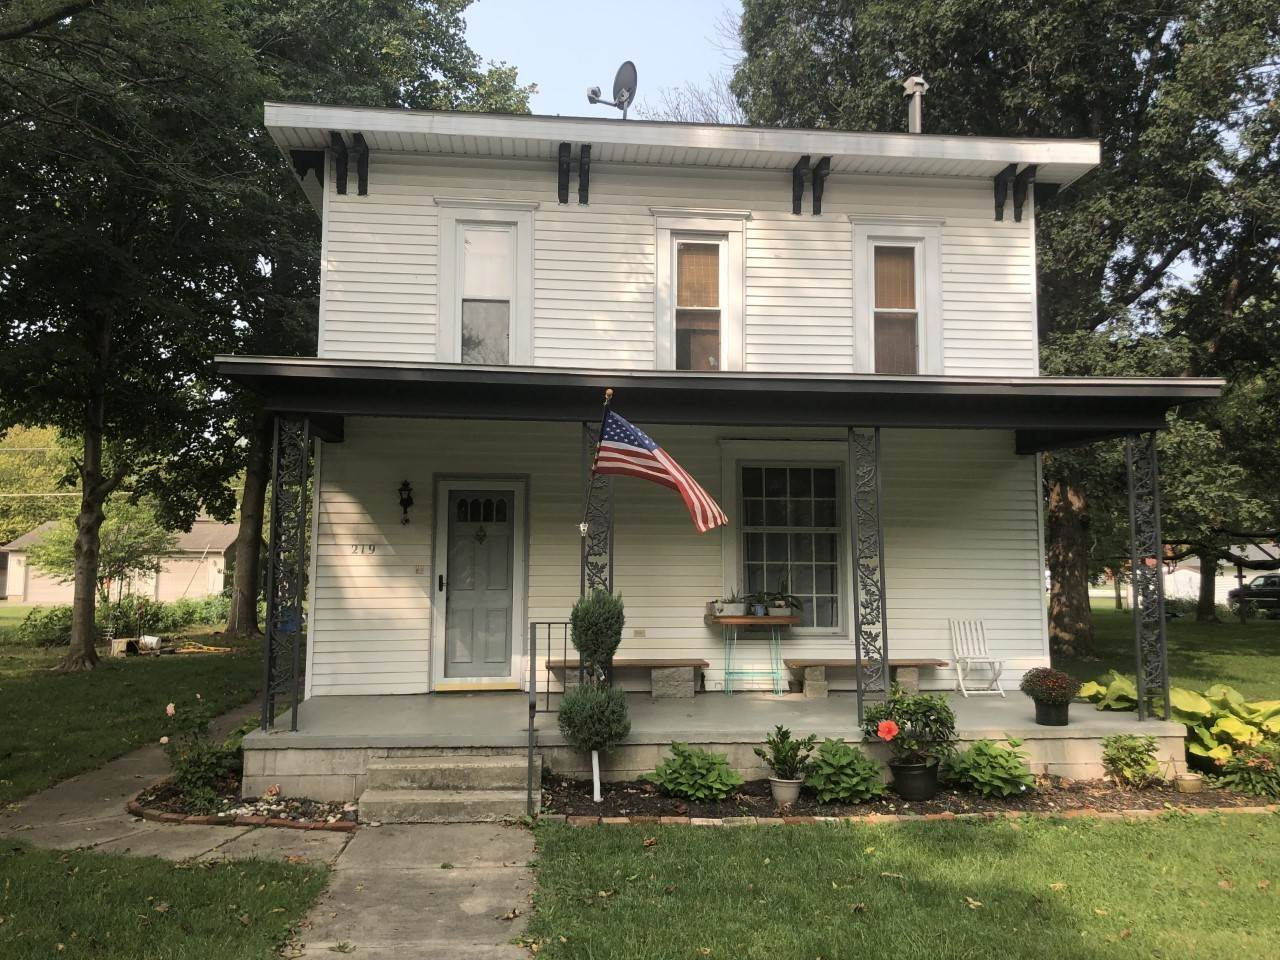 Single Family Homes for Sale at 219 N Main Street Atwood, Illinois 61913 United States